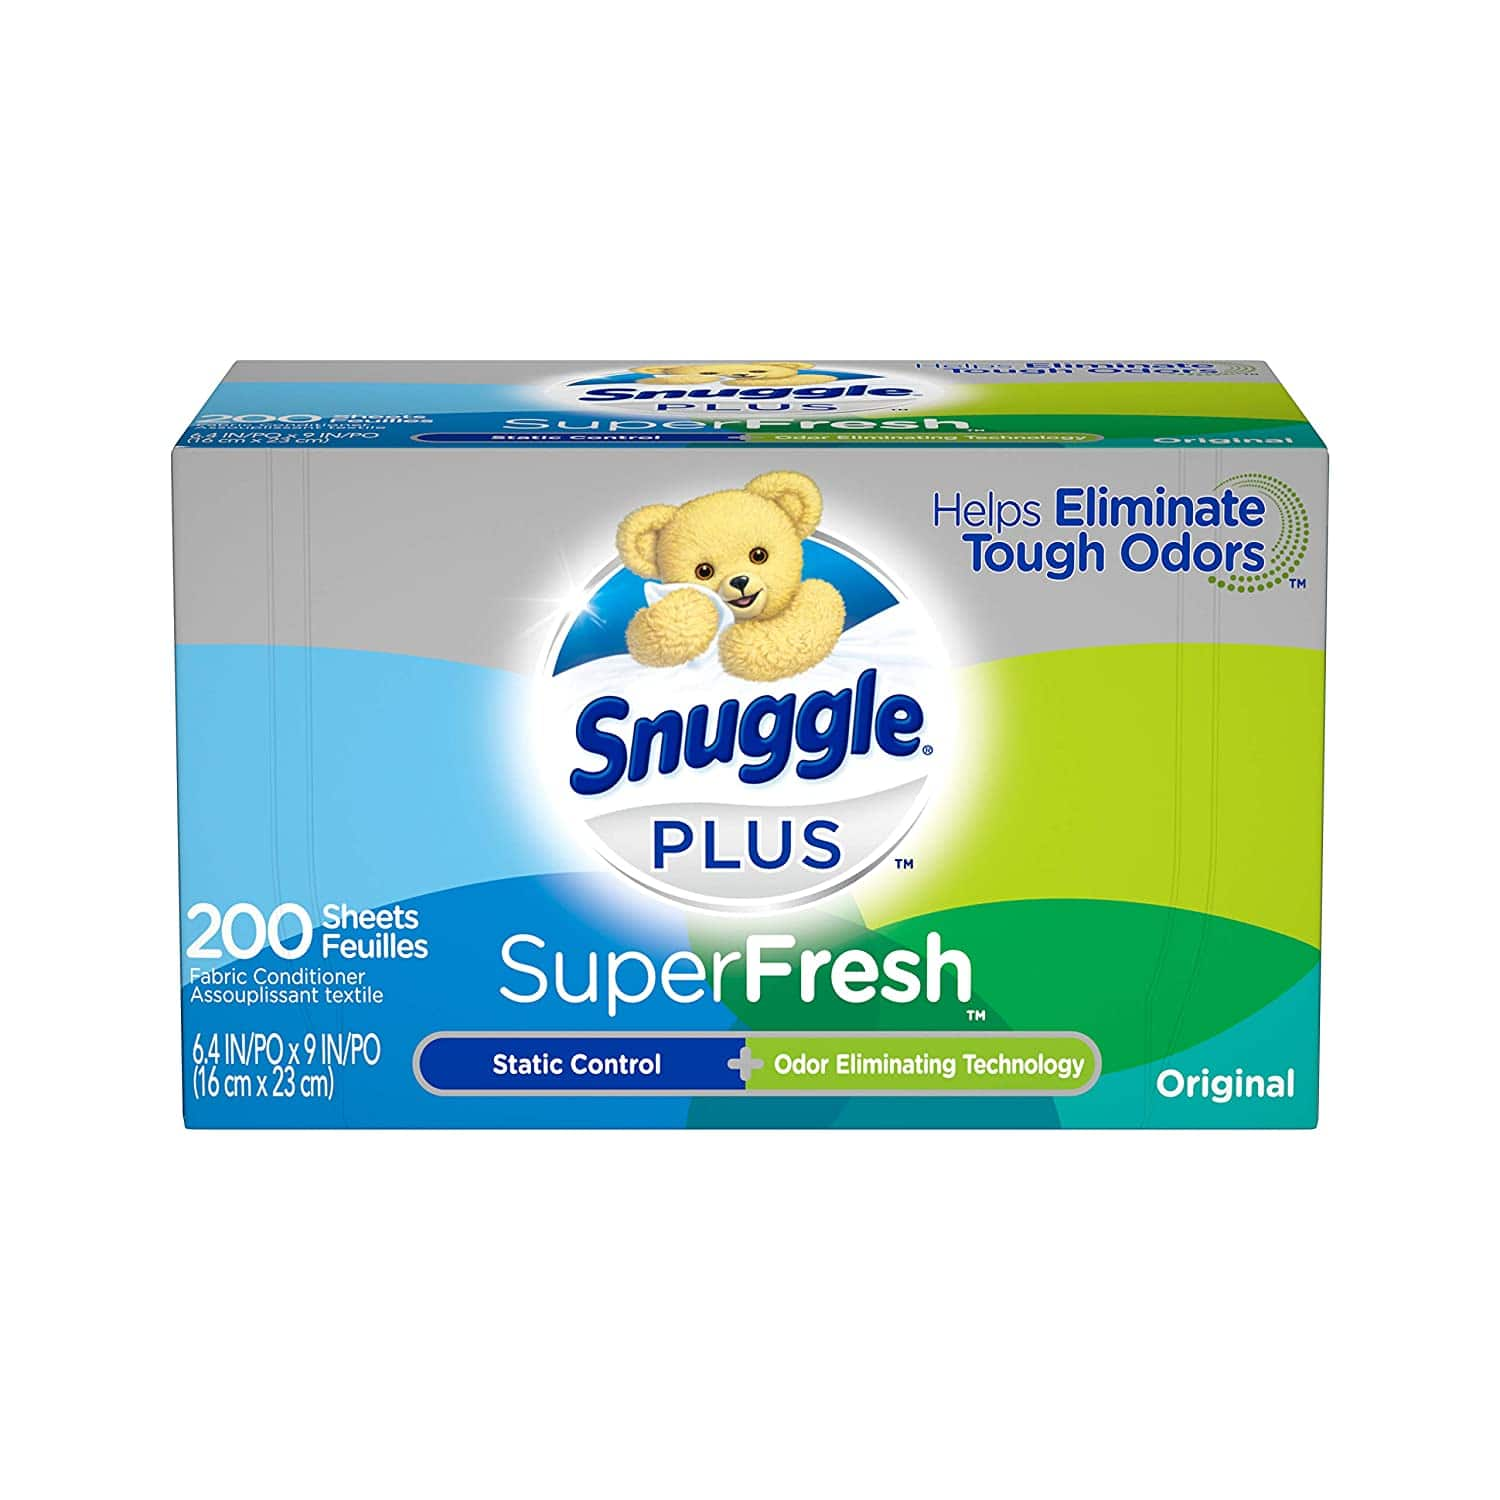 200-Ct Snuggle Plus SuperFresh Fabric Softener Dryer Sheets (Original or Spring Burst) 2 for $8.28 ($4.14 each) w/ S&S + Free Shipping w/ Prime or on $25+